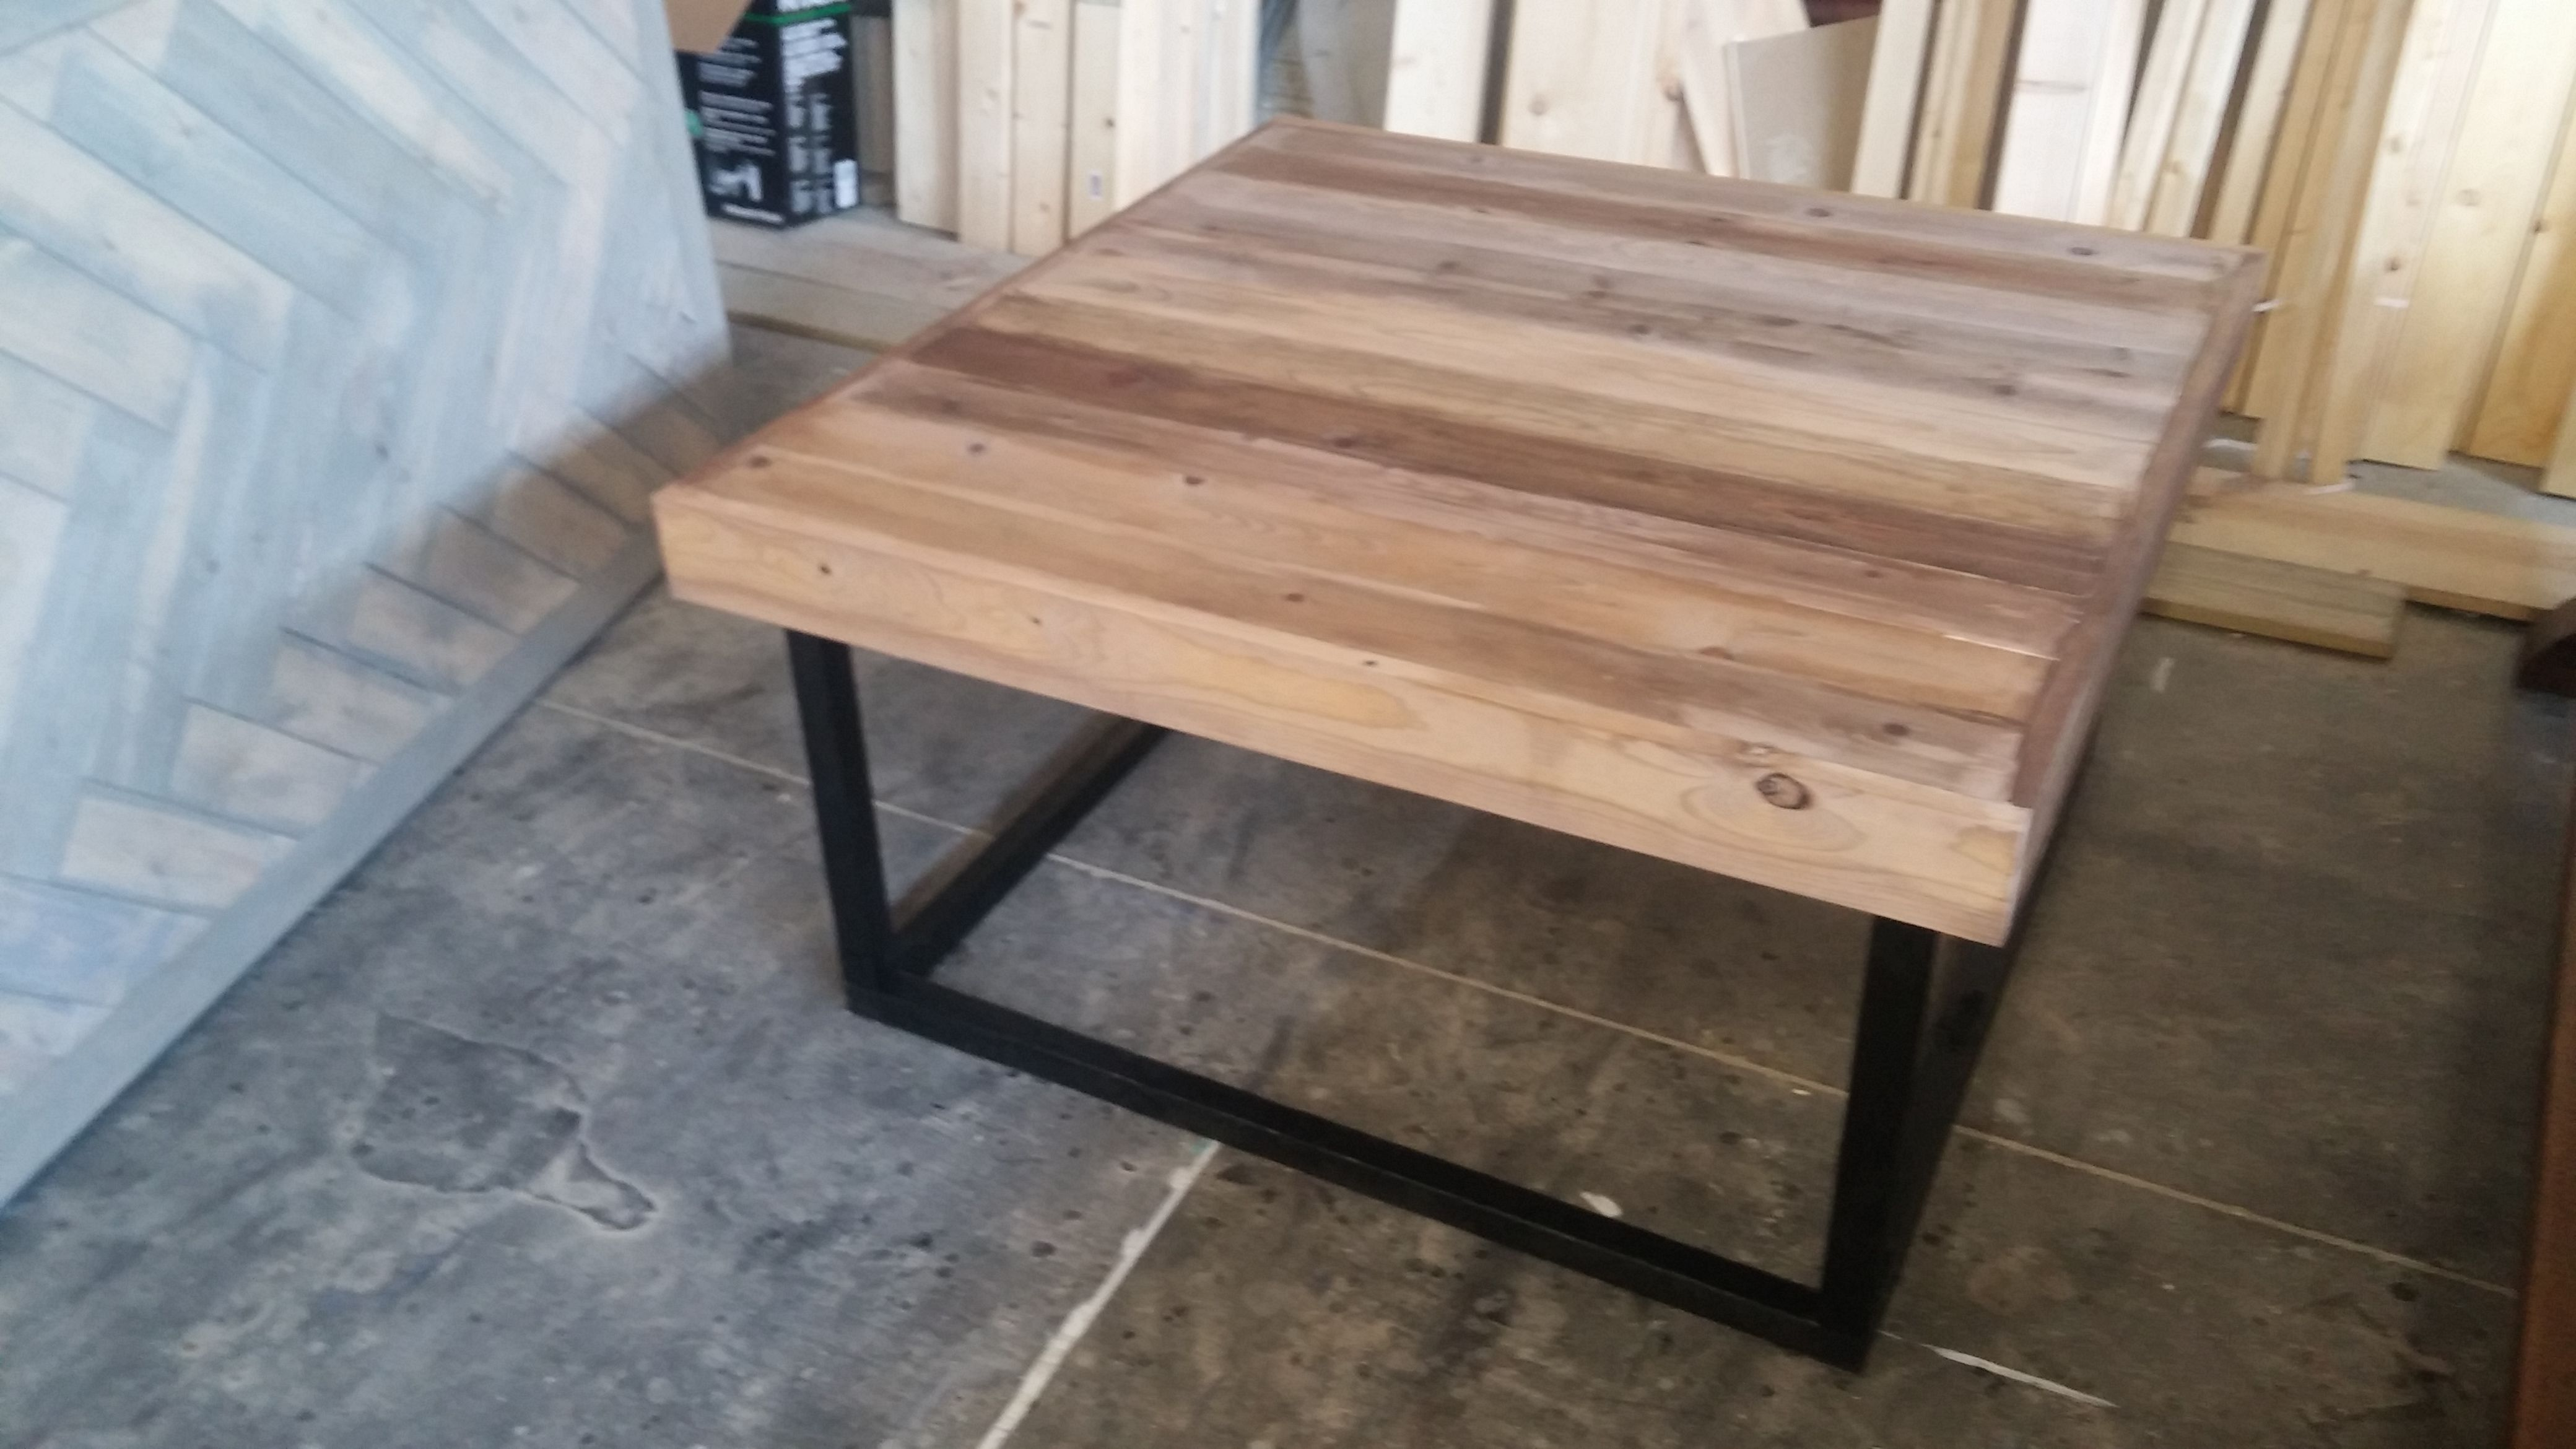 Reclaimed Wood Coffee Table 40x40 With Black Square Base